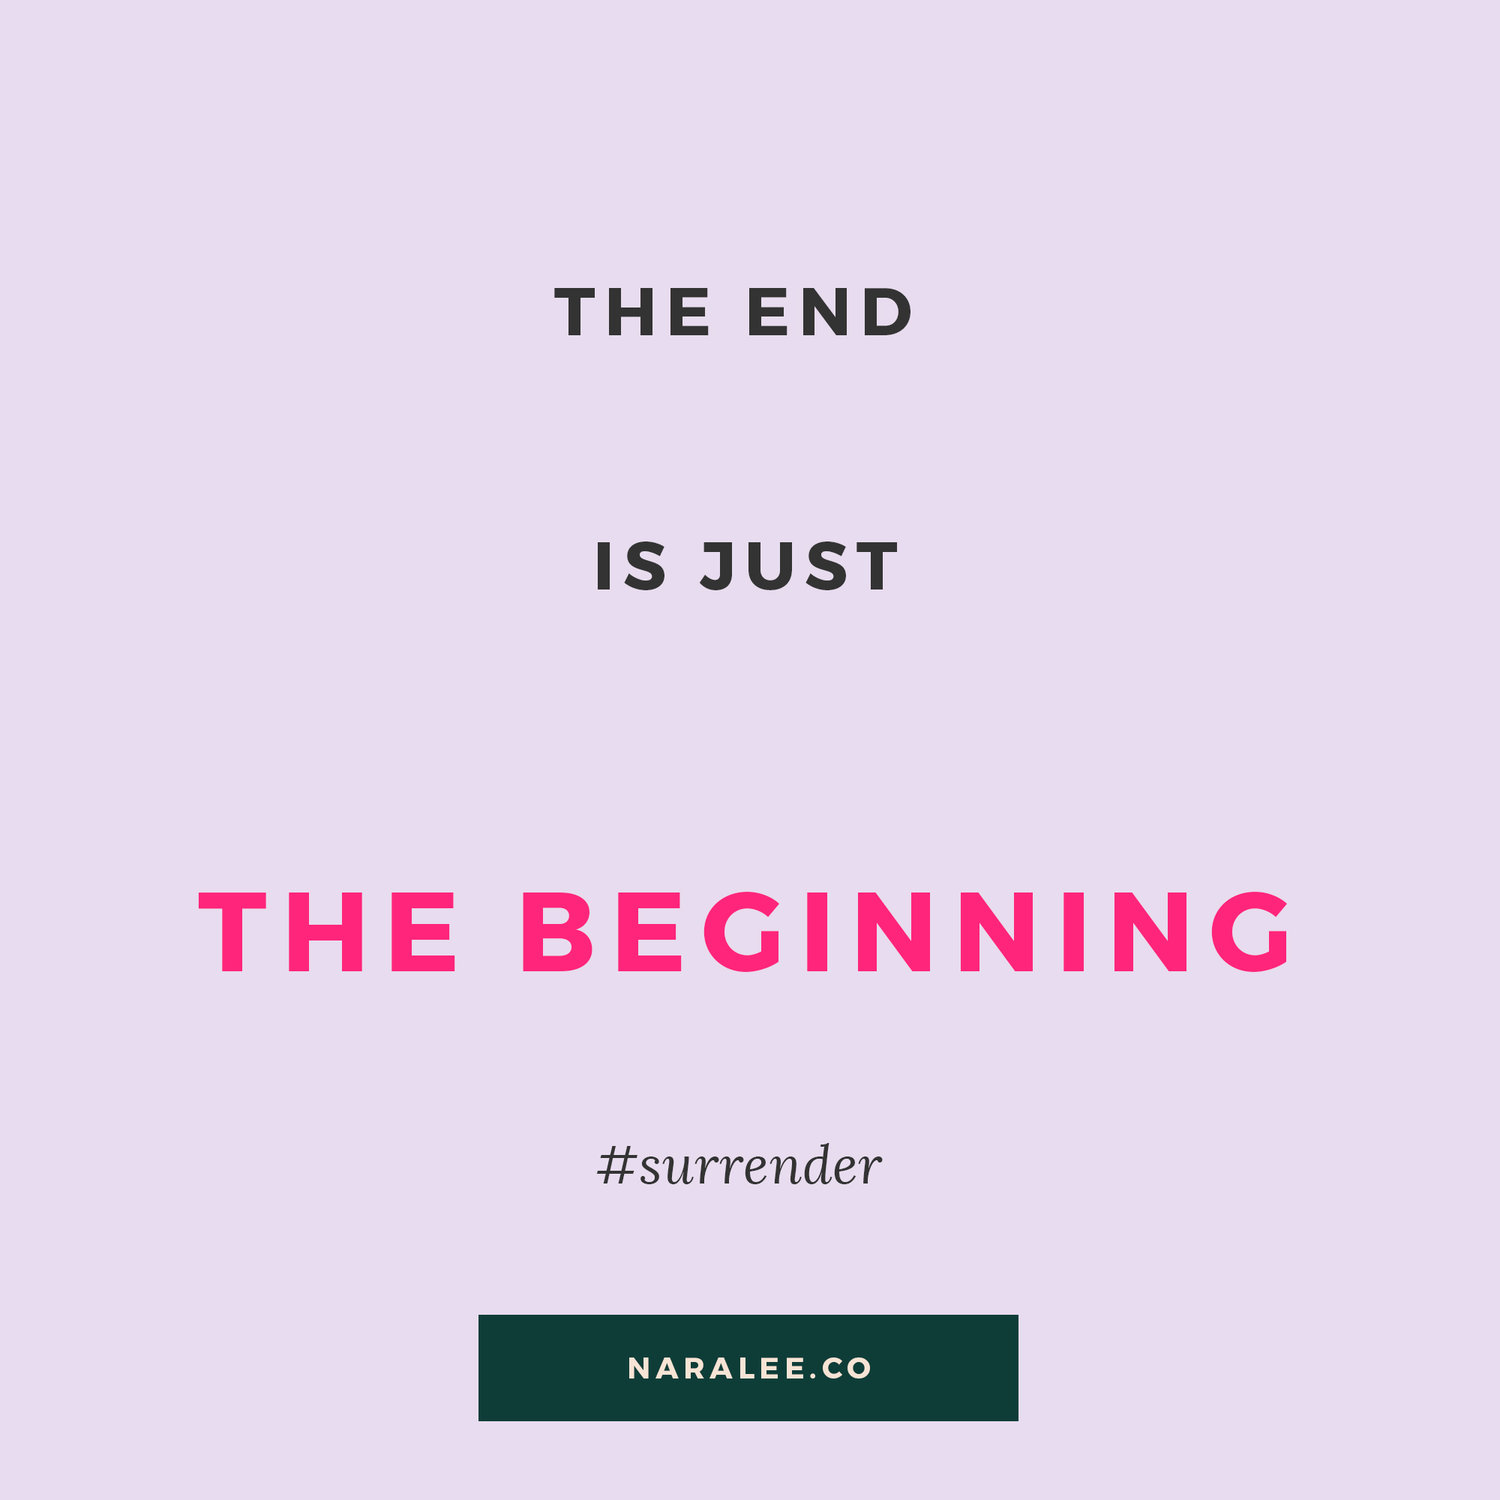 Nara Lee Quotes - The End is just The Beginning.jpg